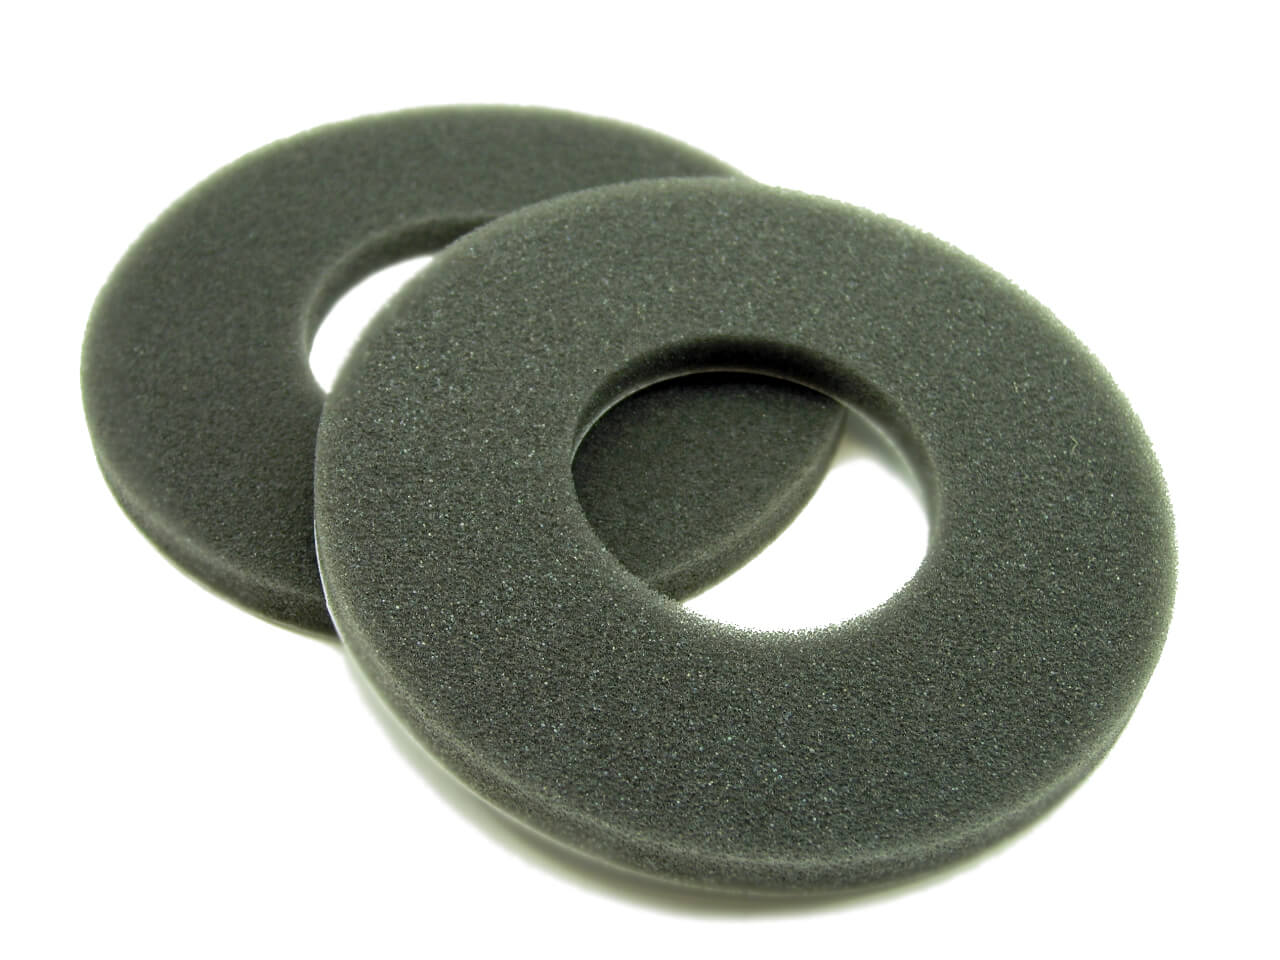 JBL Design Foam Trim Tweeter Repair Kit, JBL LE25, FSK-LE25 (PAIR)